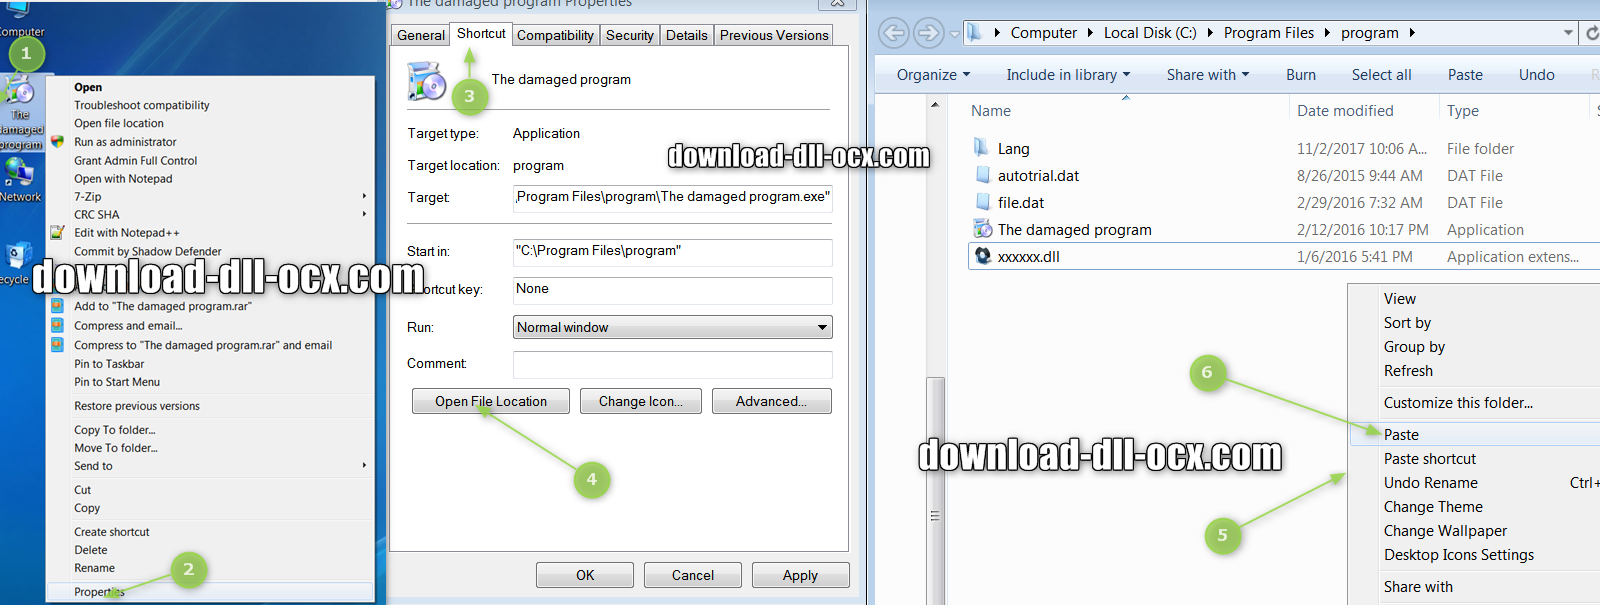 how to install schannel.dll file? for fix missing